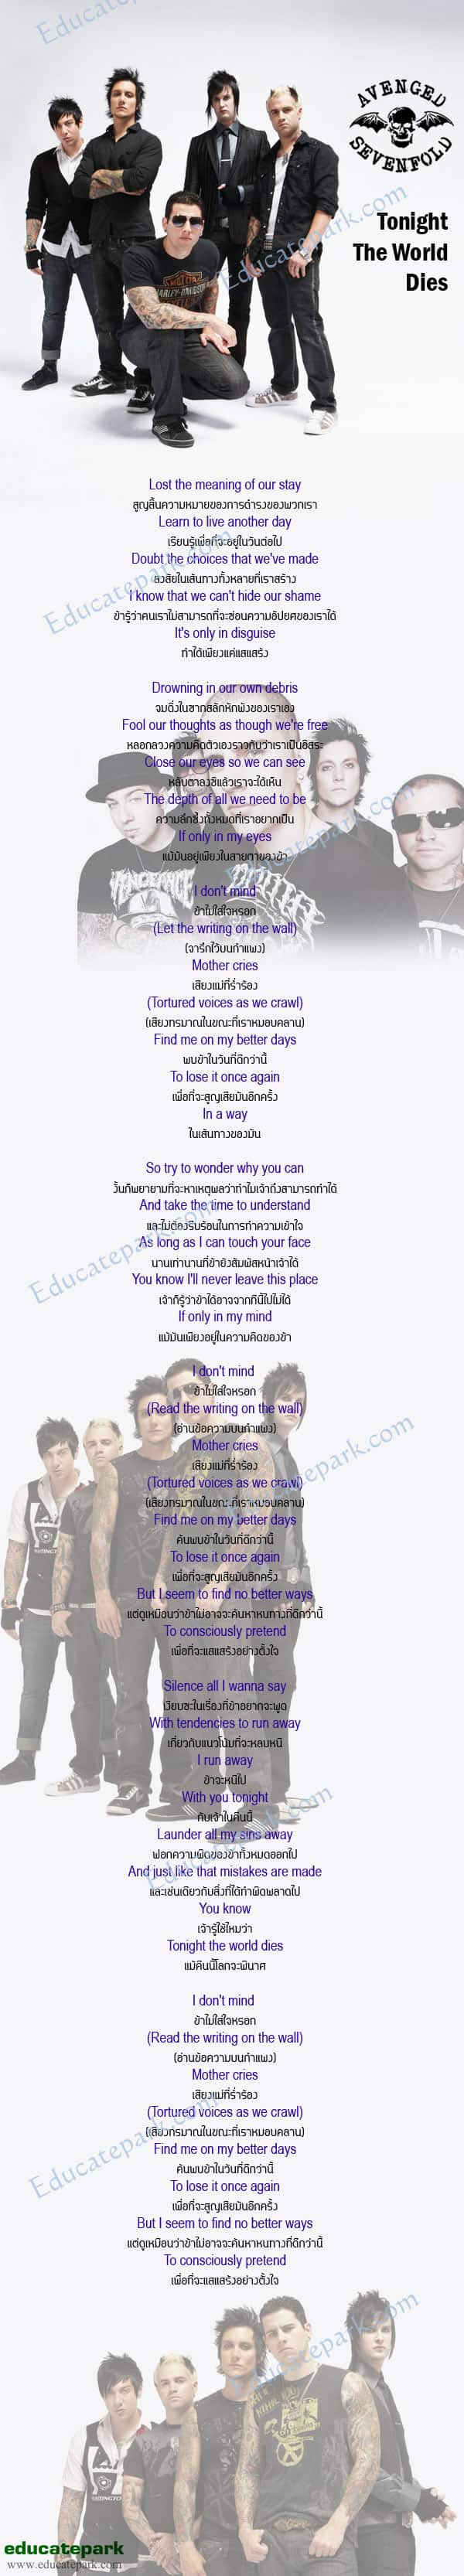 แปลเพลง Tonight The World Dies - Avenged Sevenfold